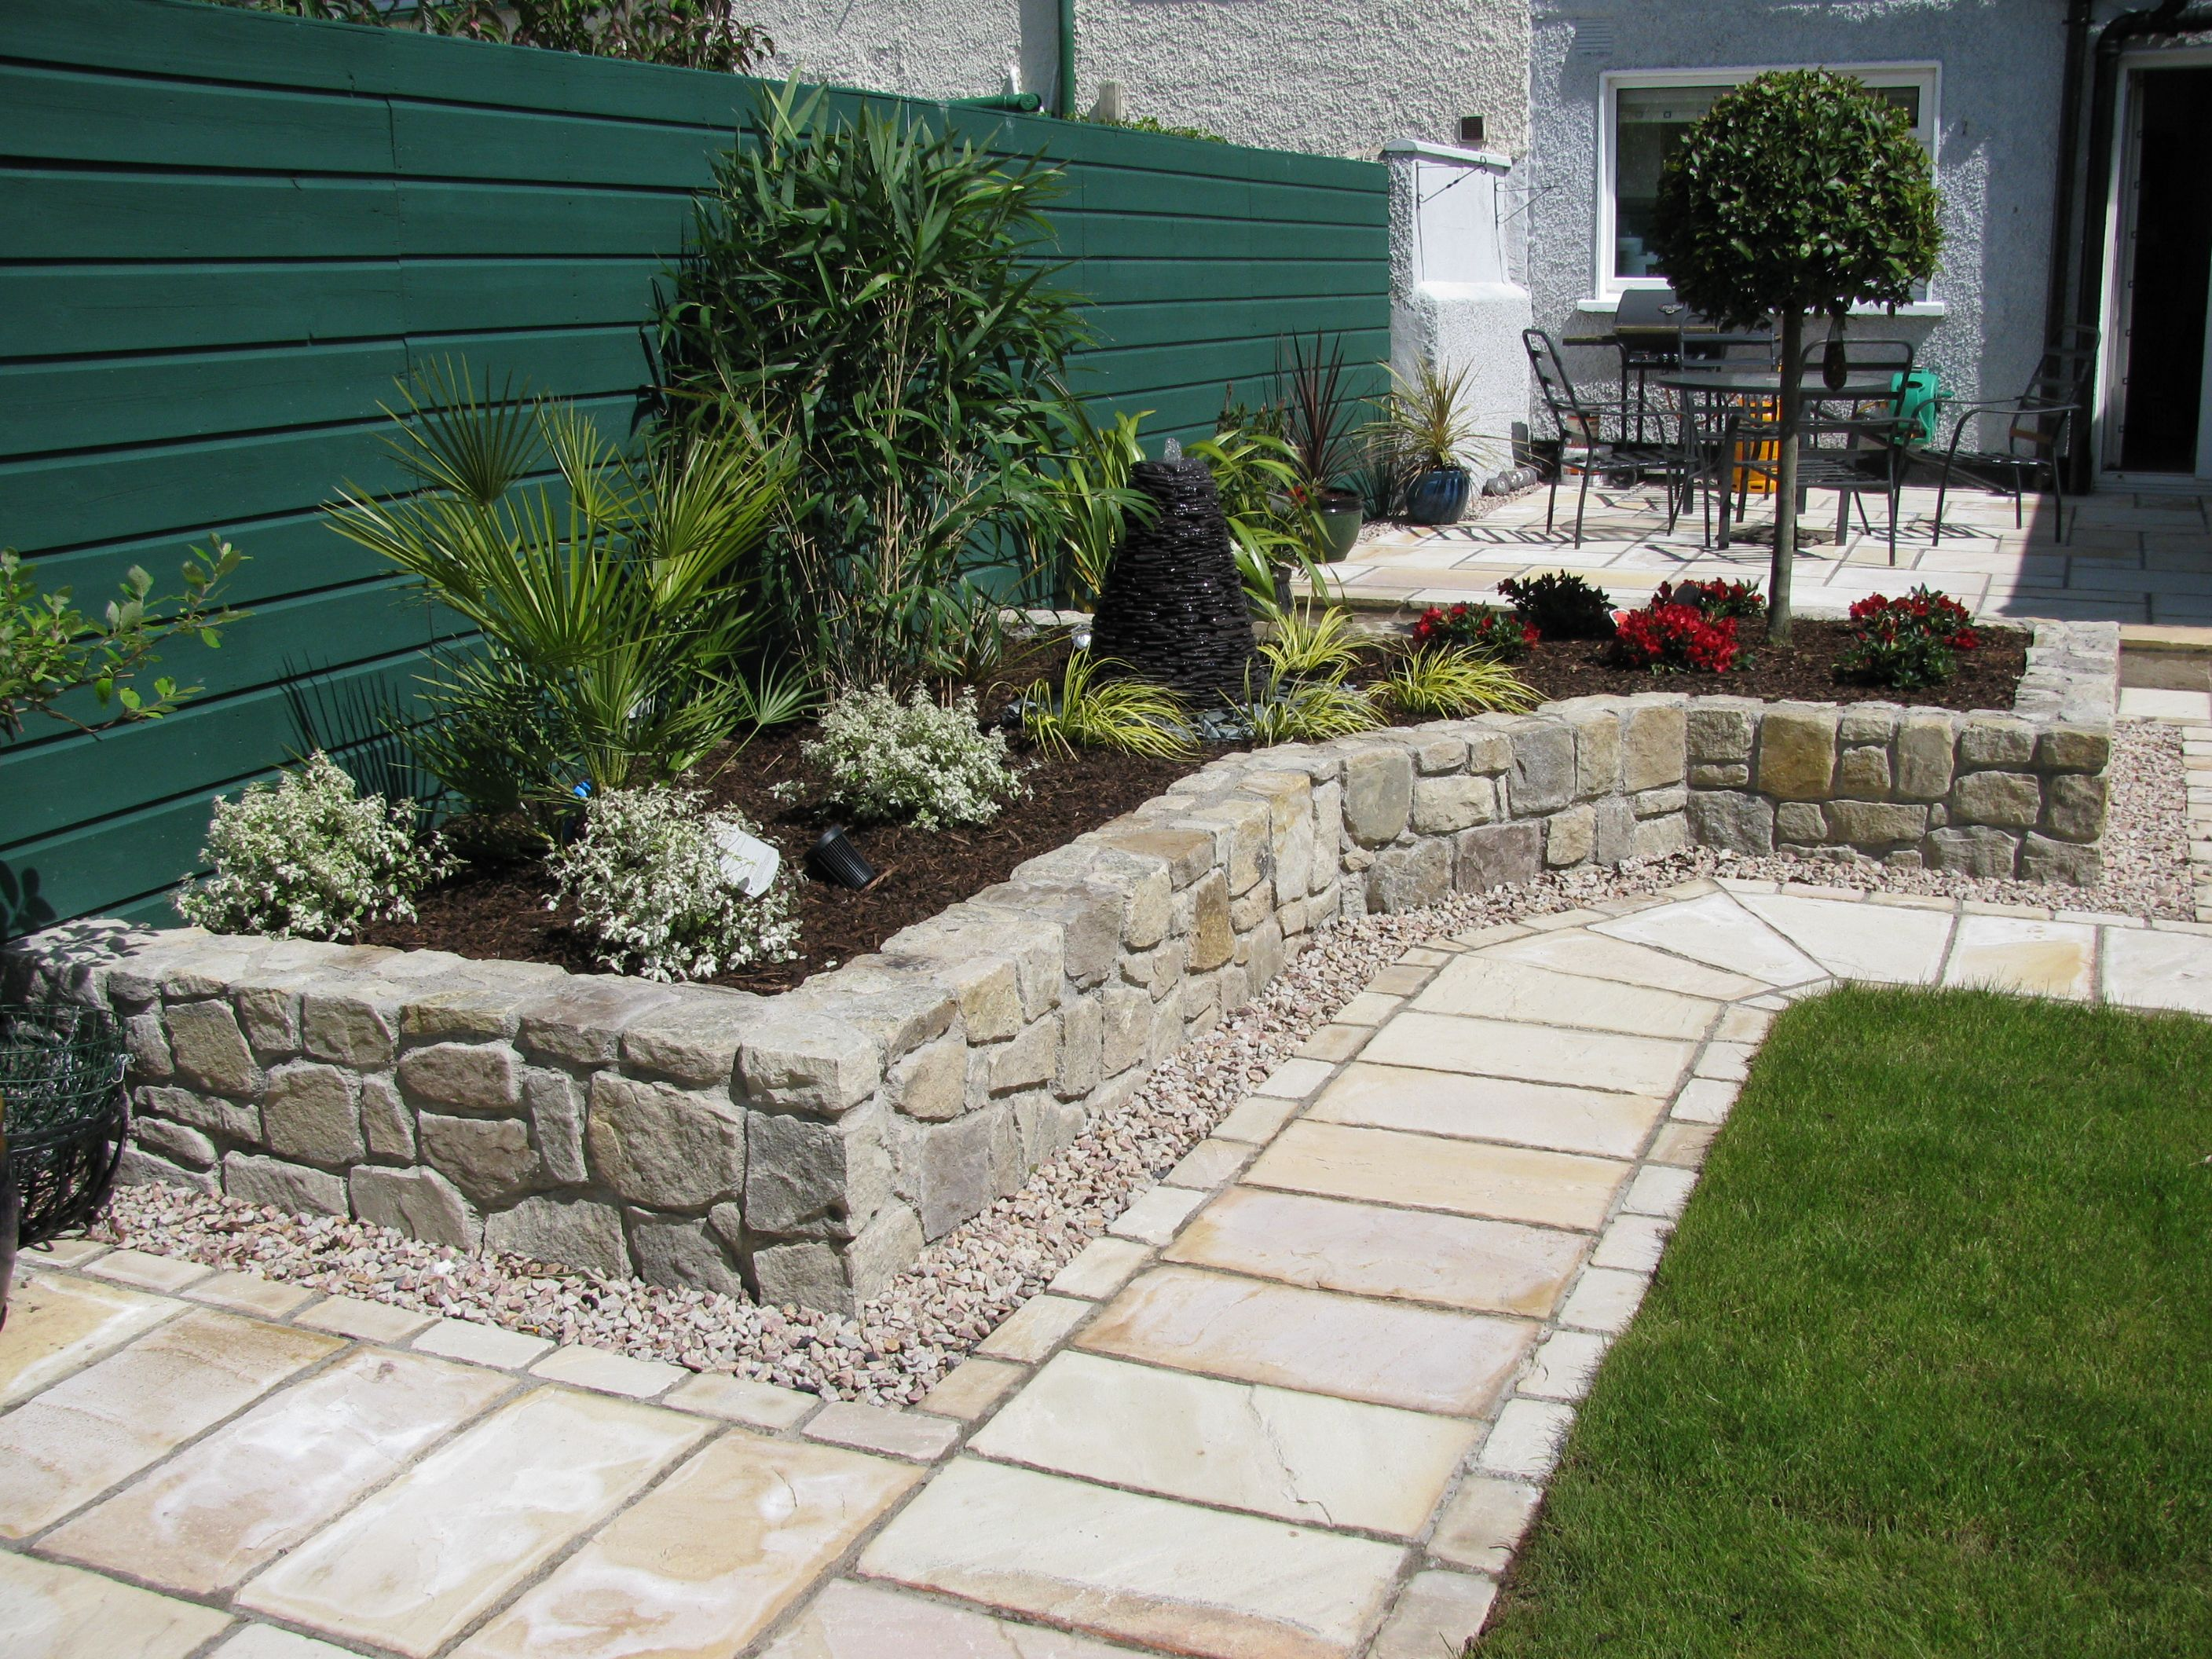 Stone Patio Design Ideas paver stone patio ideas Back